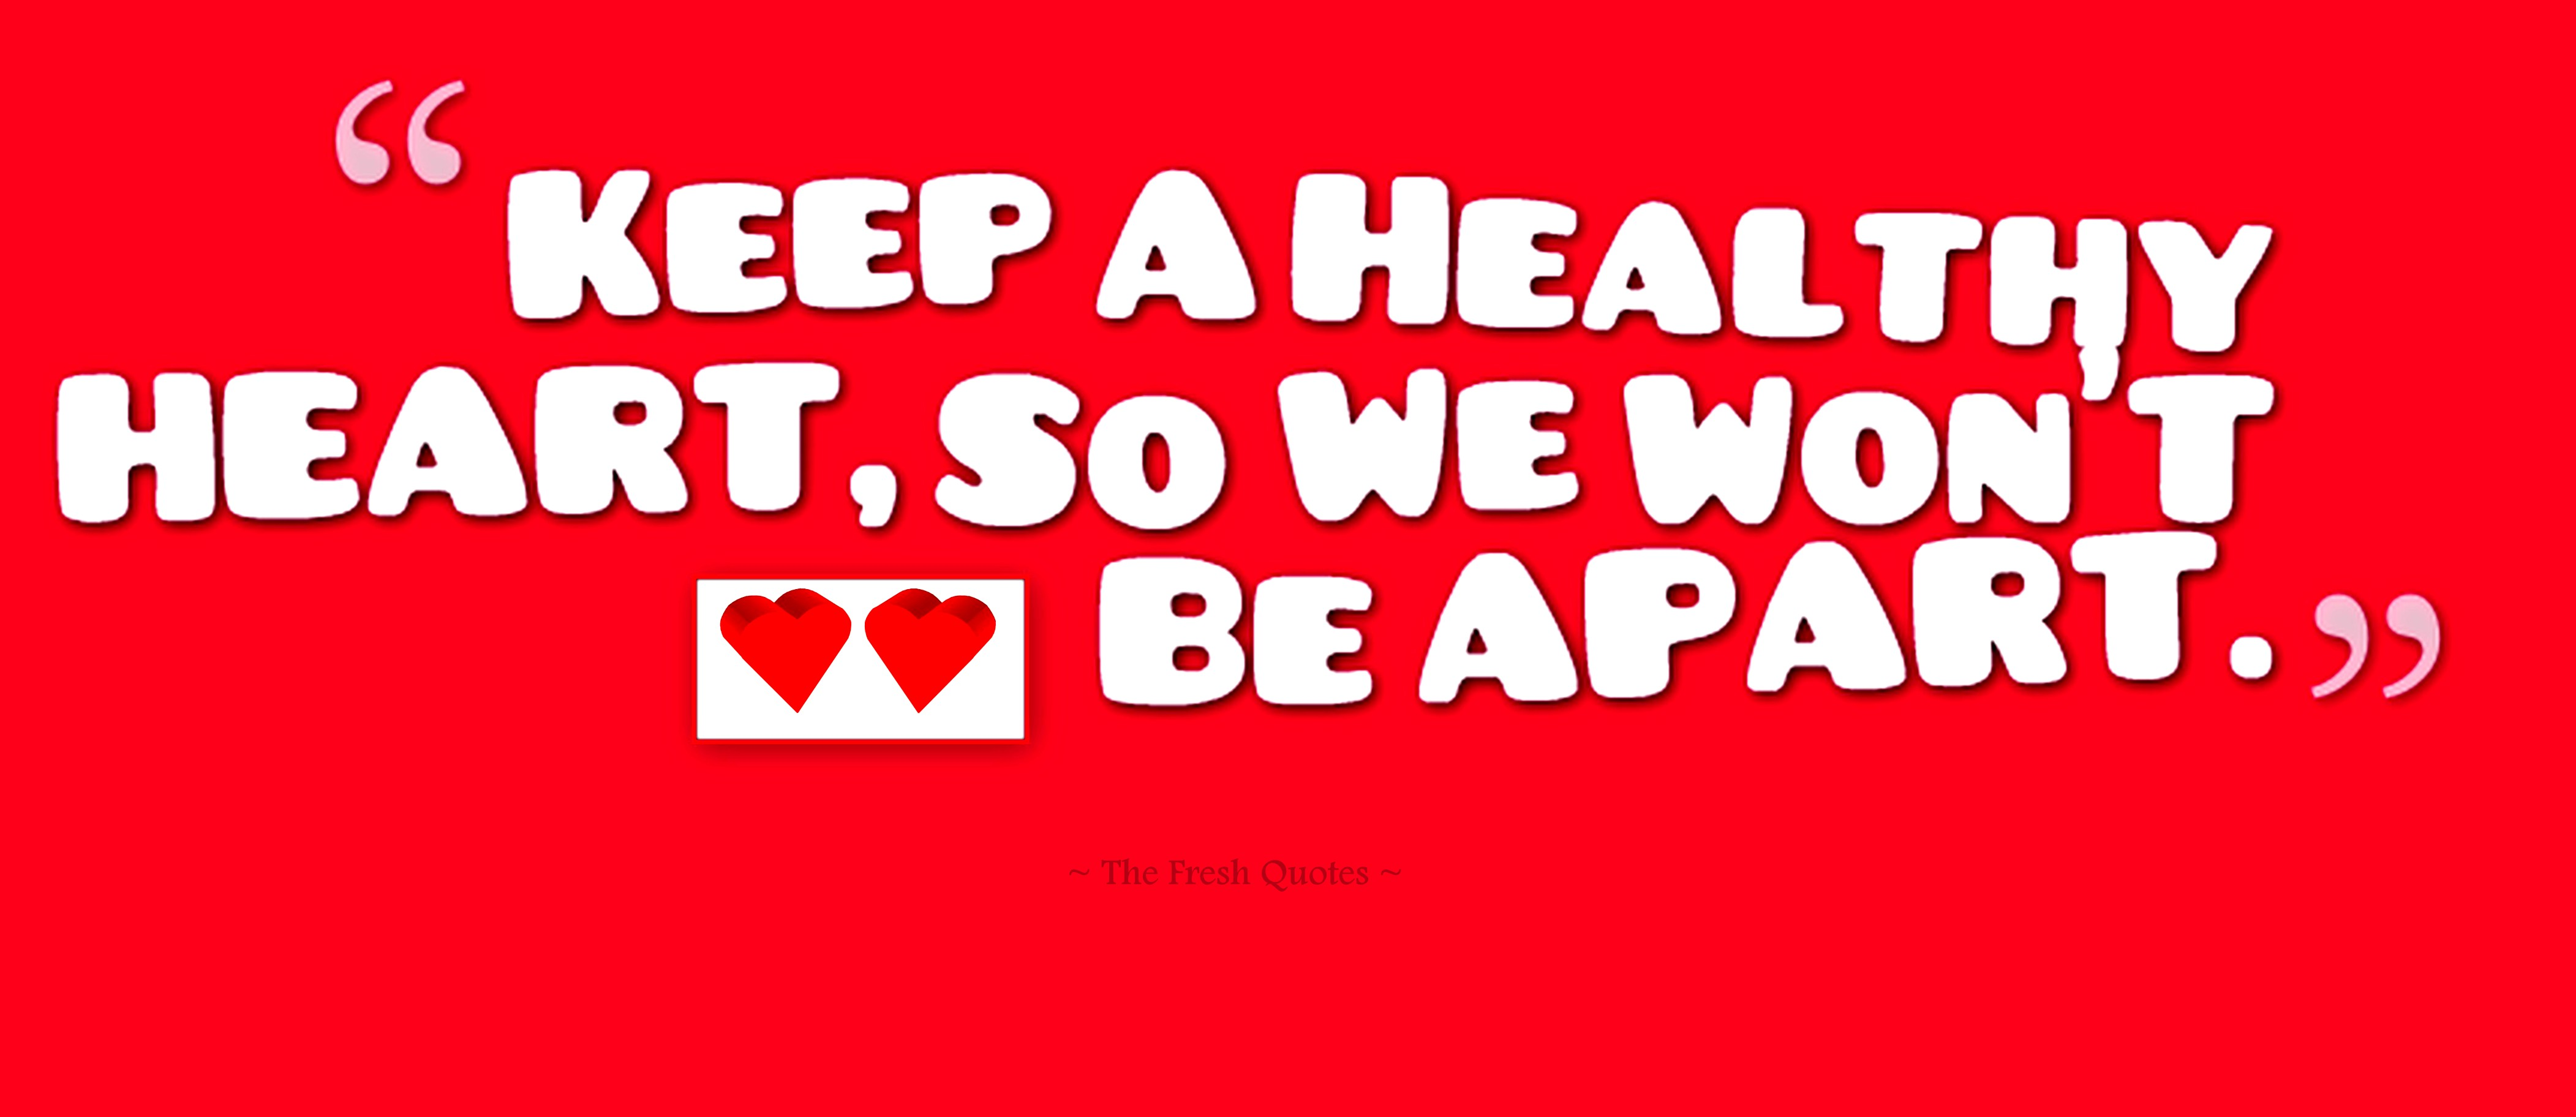 Keep Healthy Quotes 2